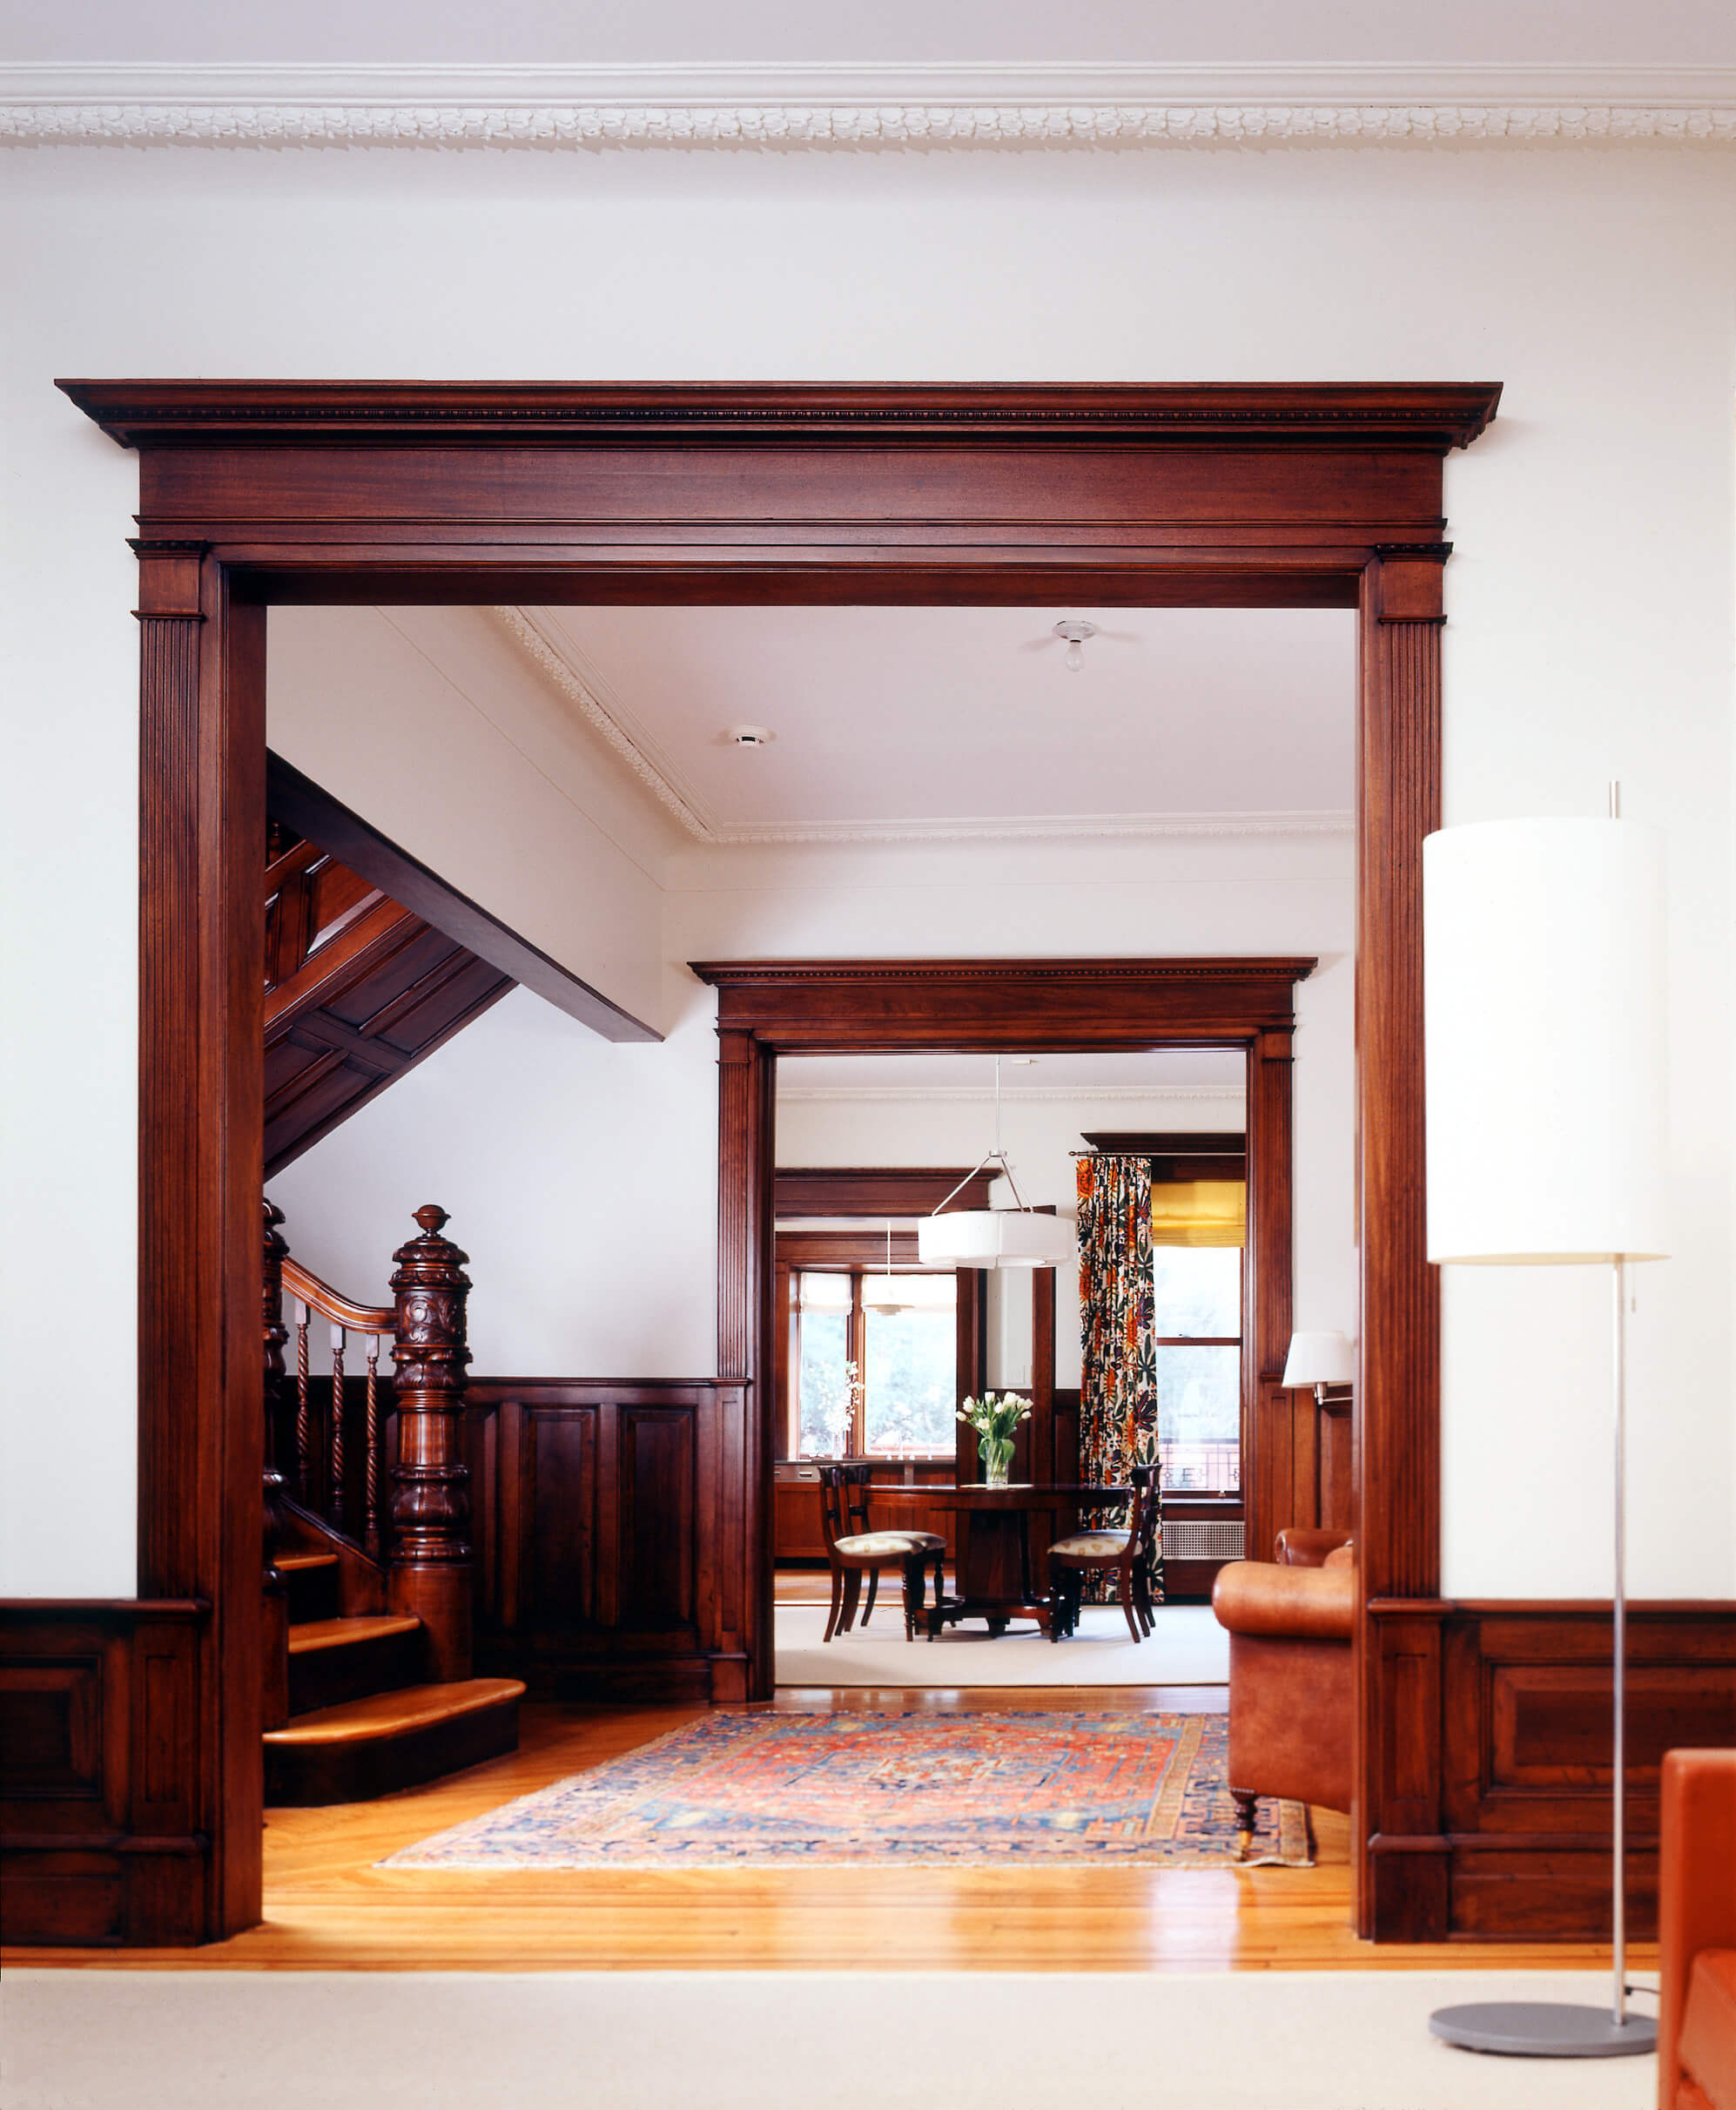 Traditional mahogany and oak moldings and casings